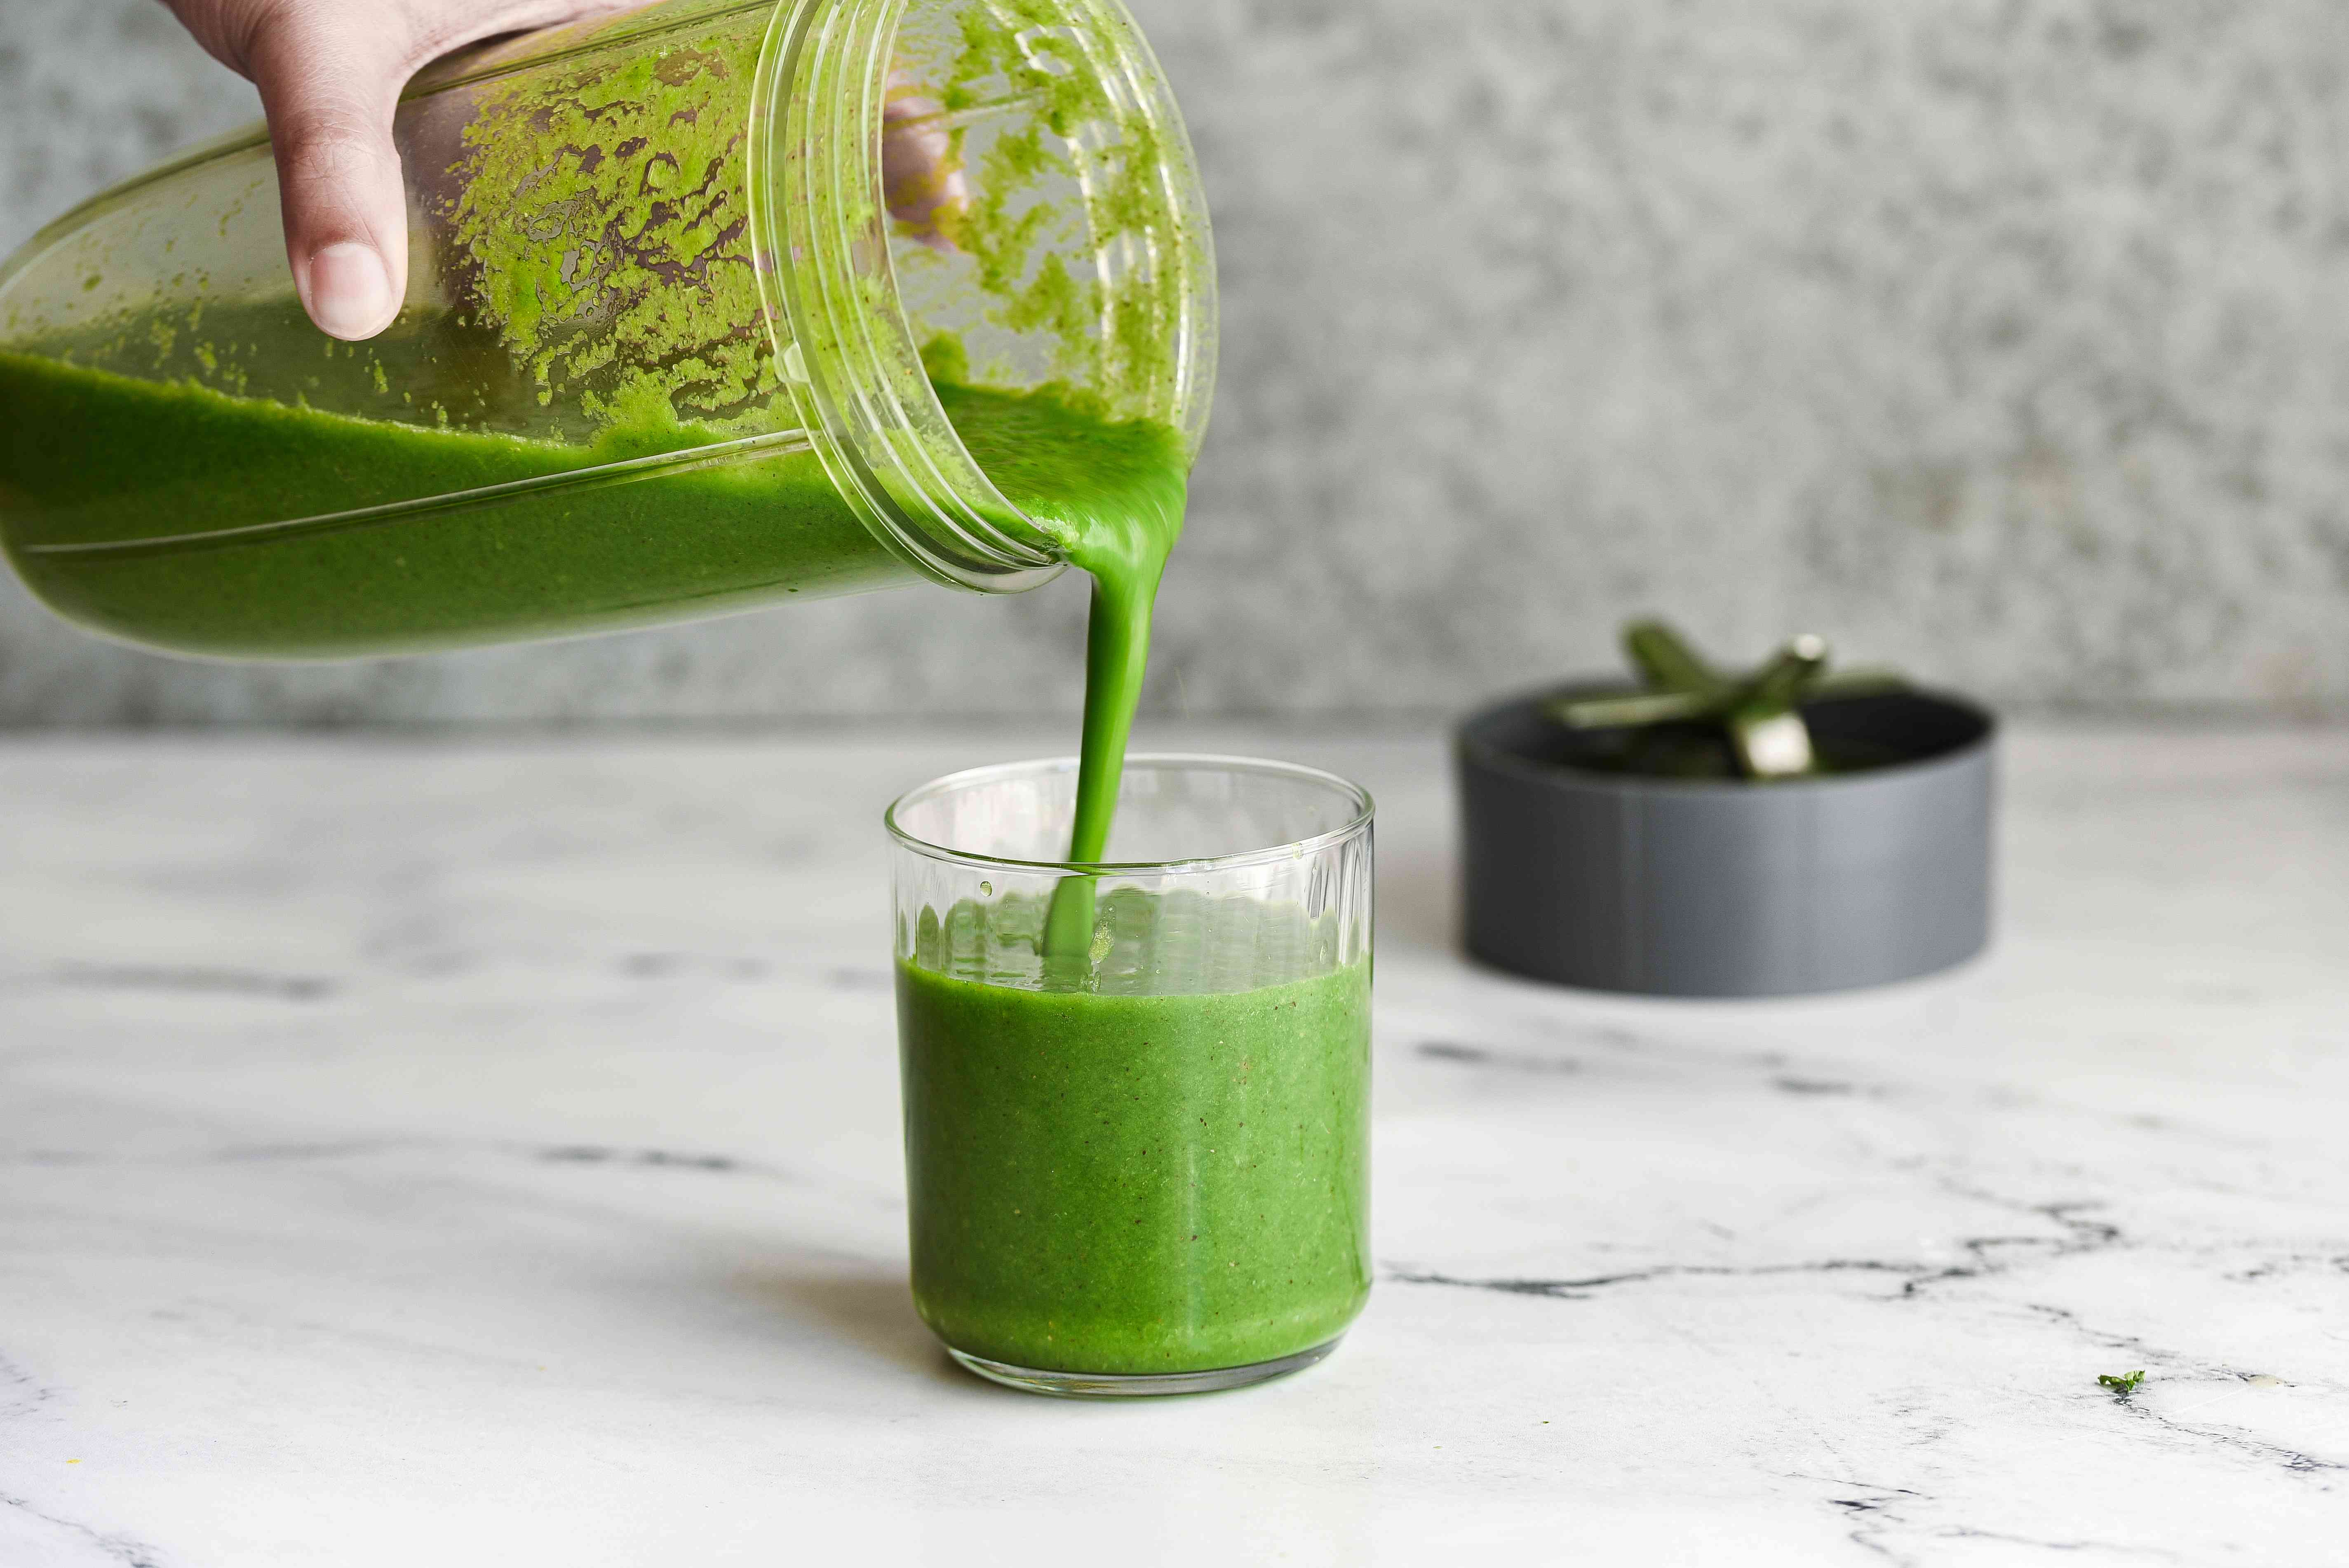 Apple Kiwi Superpower Green Smoothie poured into a glass